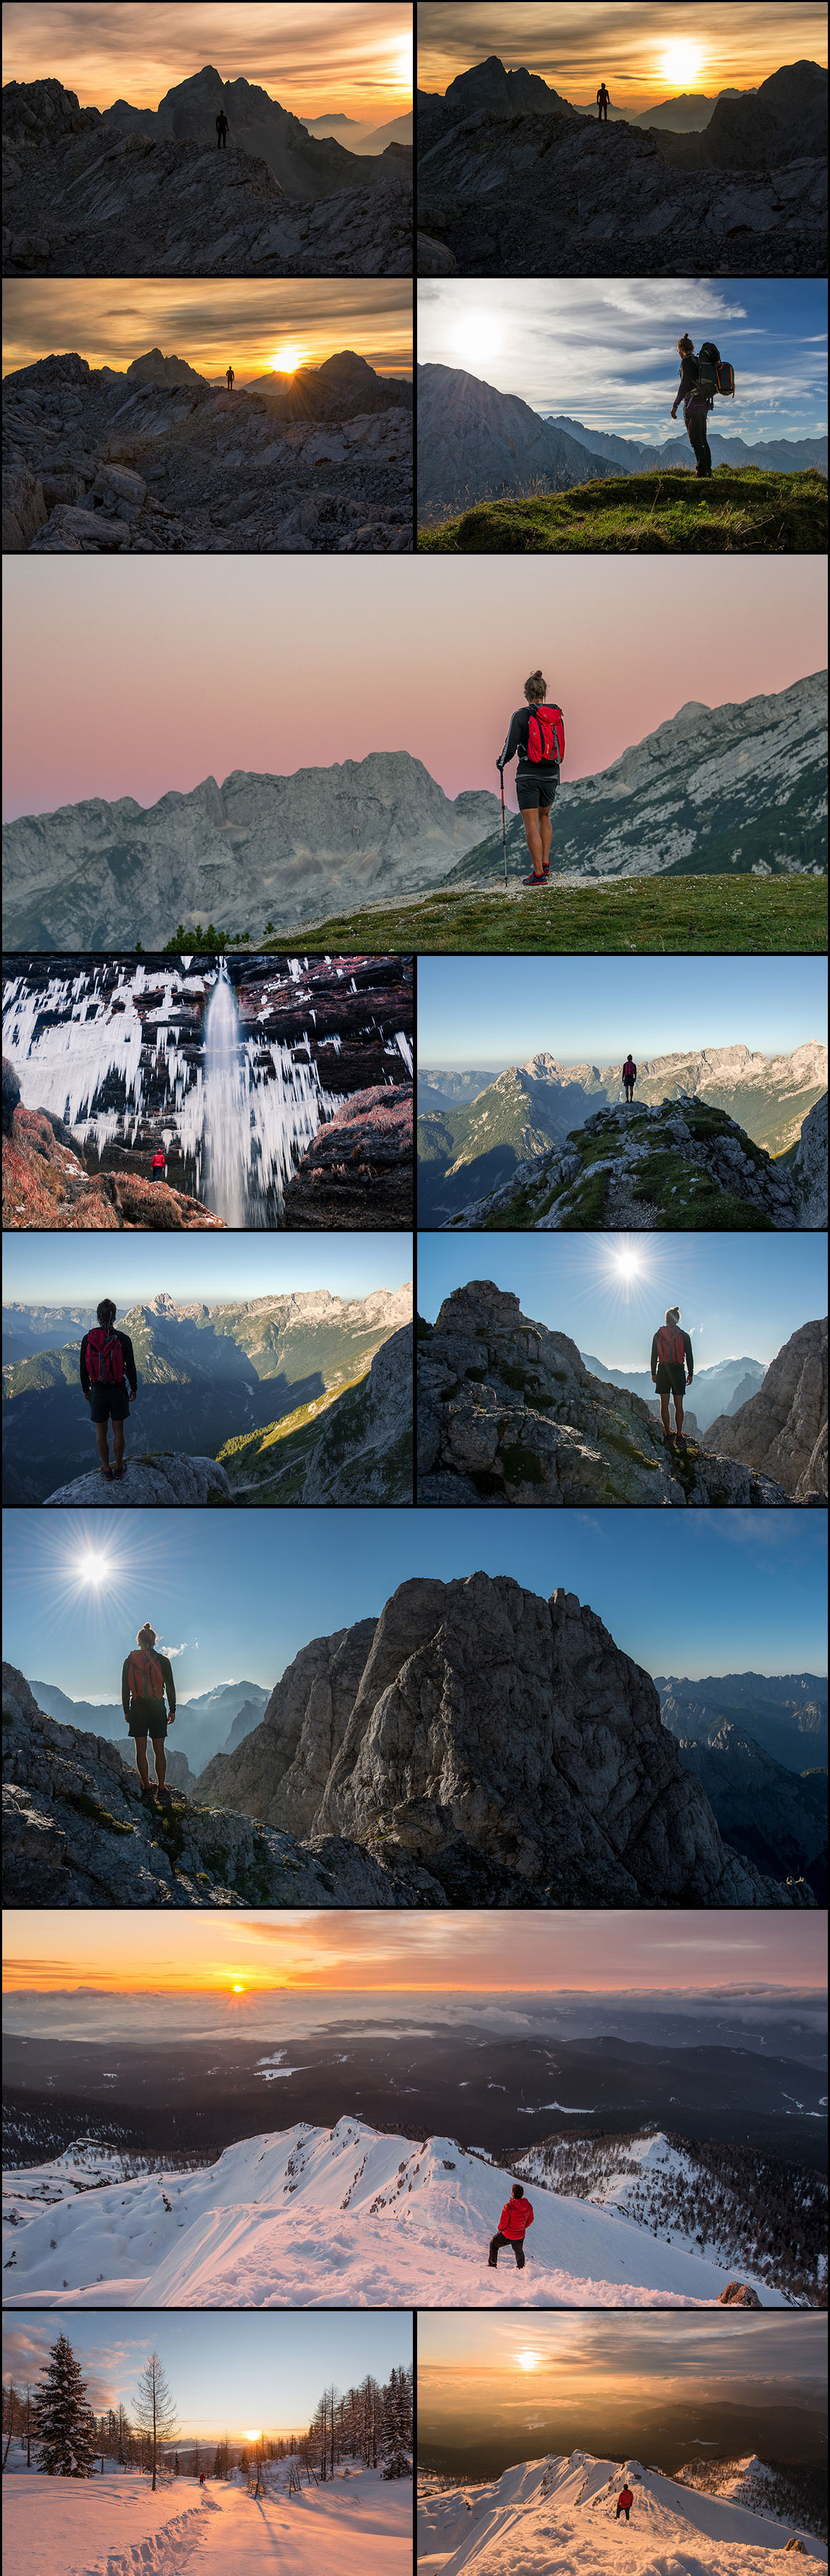 Ultimate Photo Bundle 2016 from DreamyPixel – 700+ Images example image 4